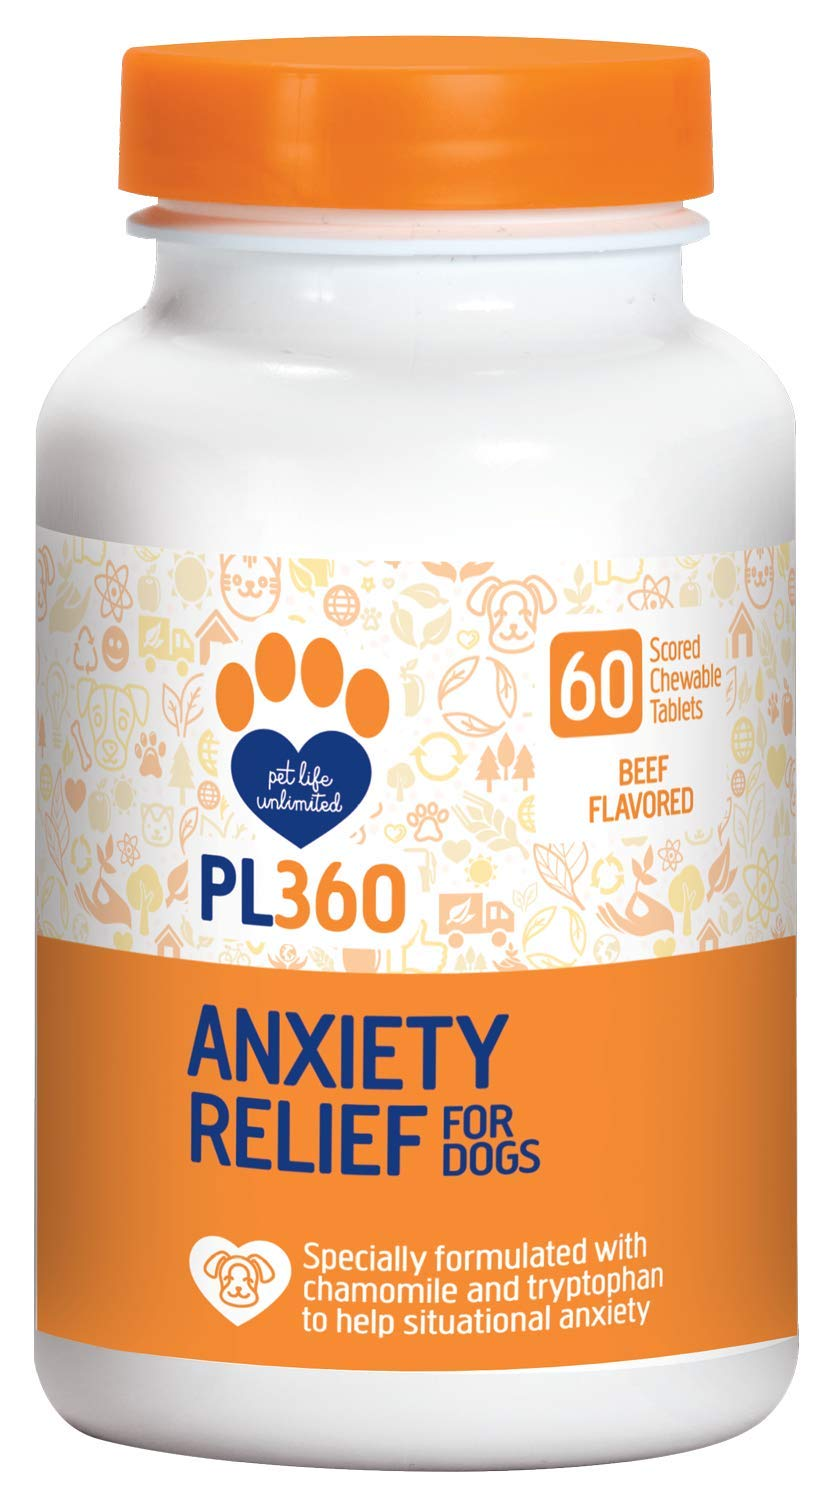 PL360 Anxiety Relief Chewable Supplements for Dogs, 60 Count by PL360